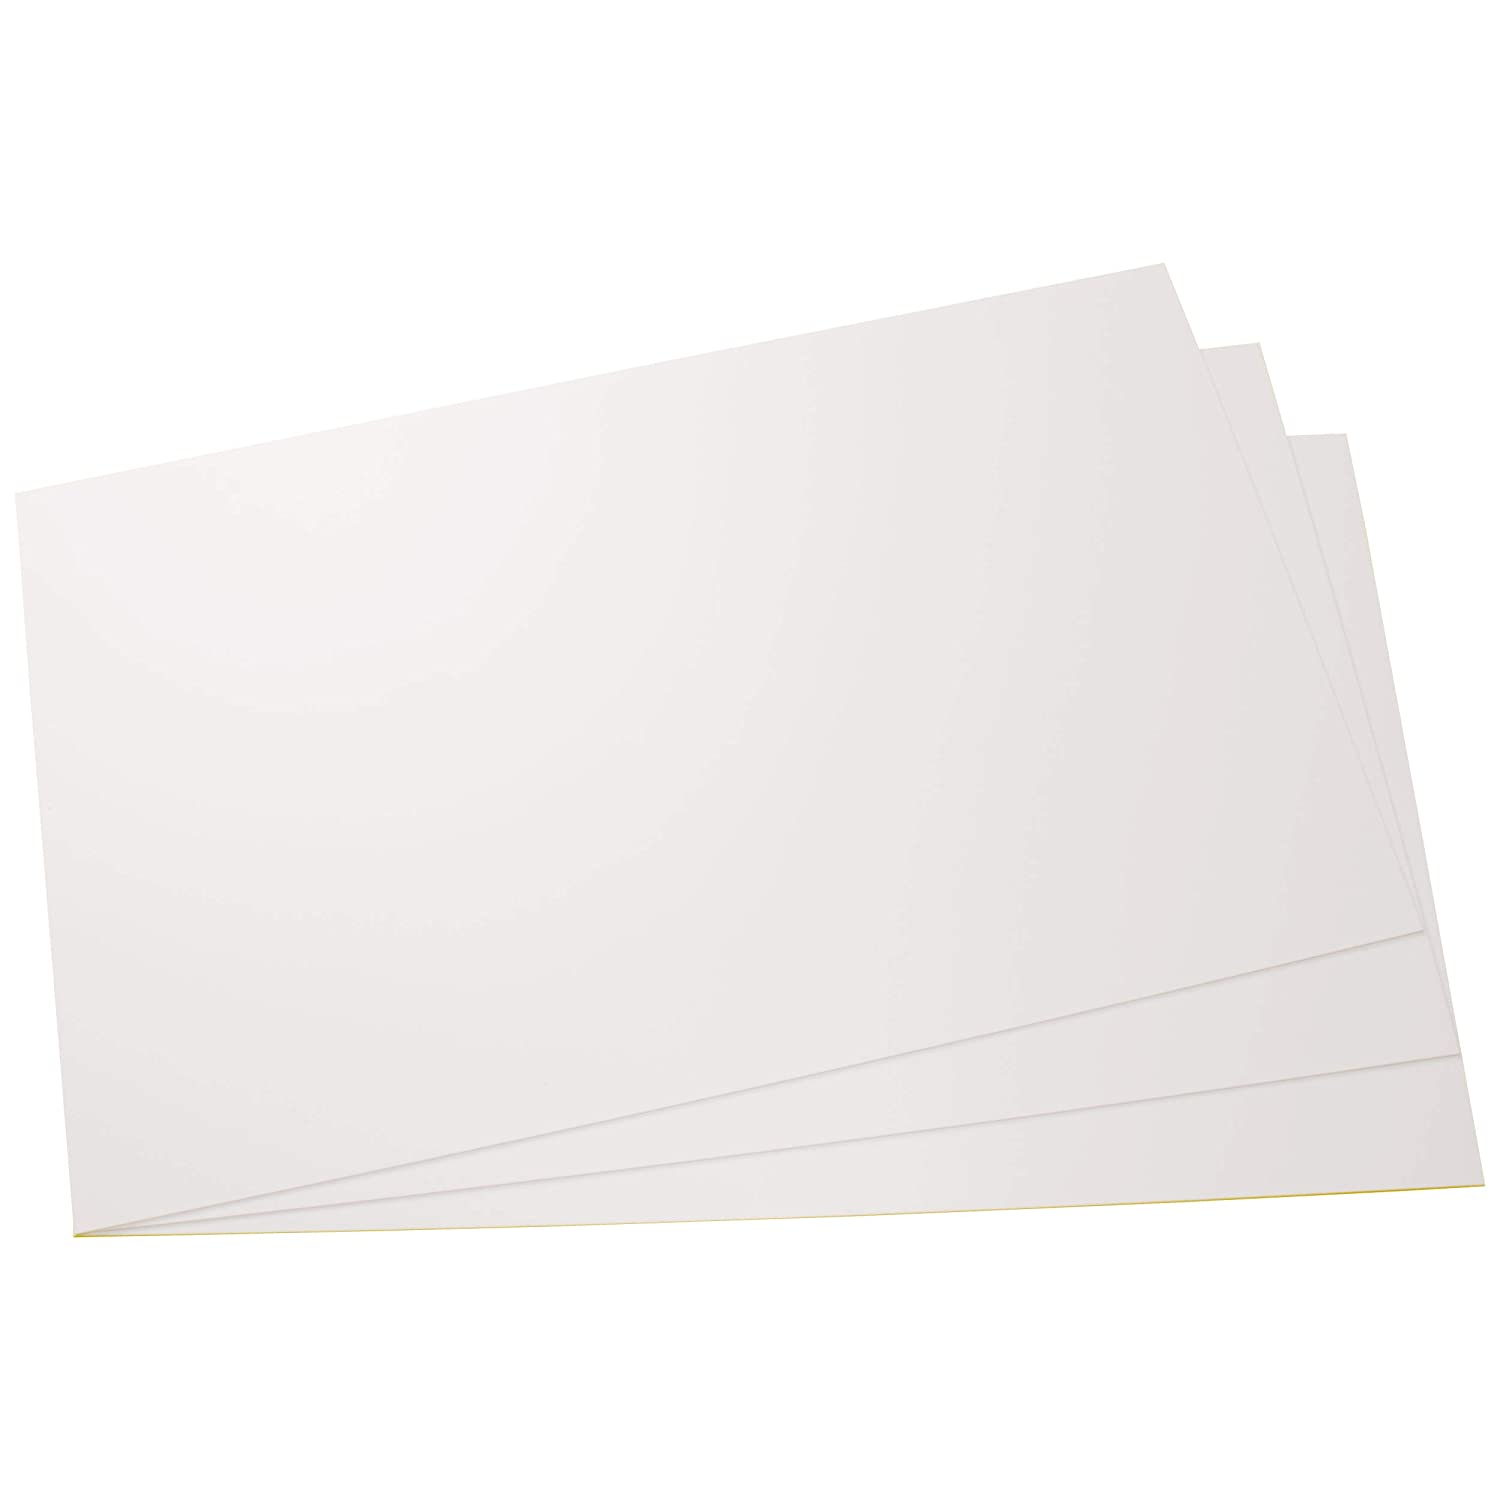 different sizes and quantities strong ps panels Plastic panels plastic sheet hard buy 5 pieces thickness: 1//12 for model making//handikraft work white 11,6 x 7,8 x 1//13